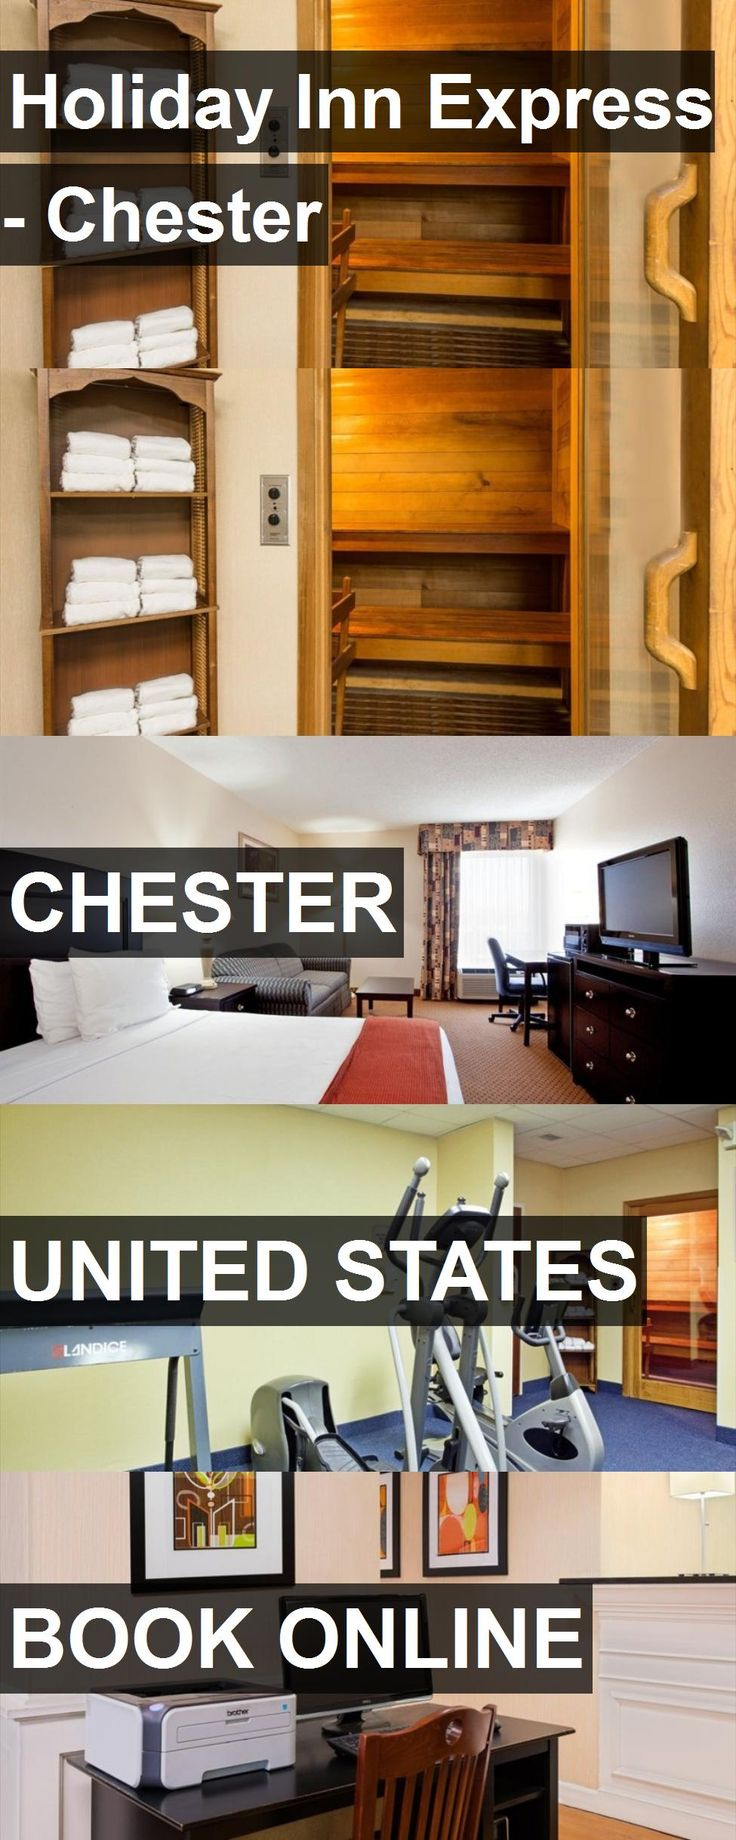 Hotel Holiday Inn Express - Chester in Chester, United States. For more information, photos, reviews and best prices please follow the link. #UnitedStates #Chester #HolidayInnExpress-Chester #hotel #travel #vacation